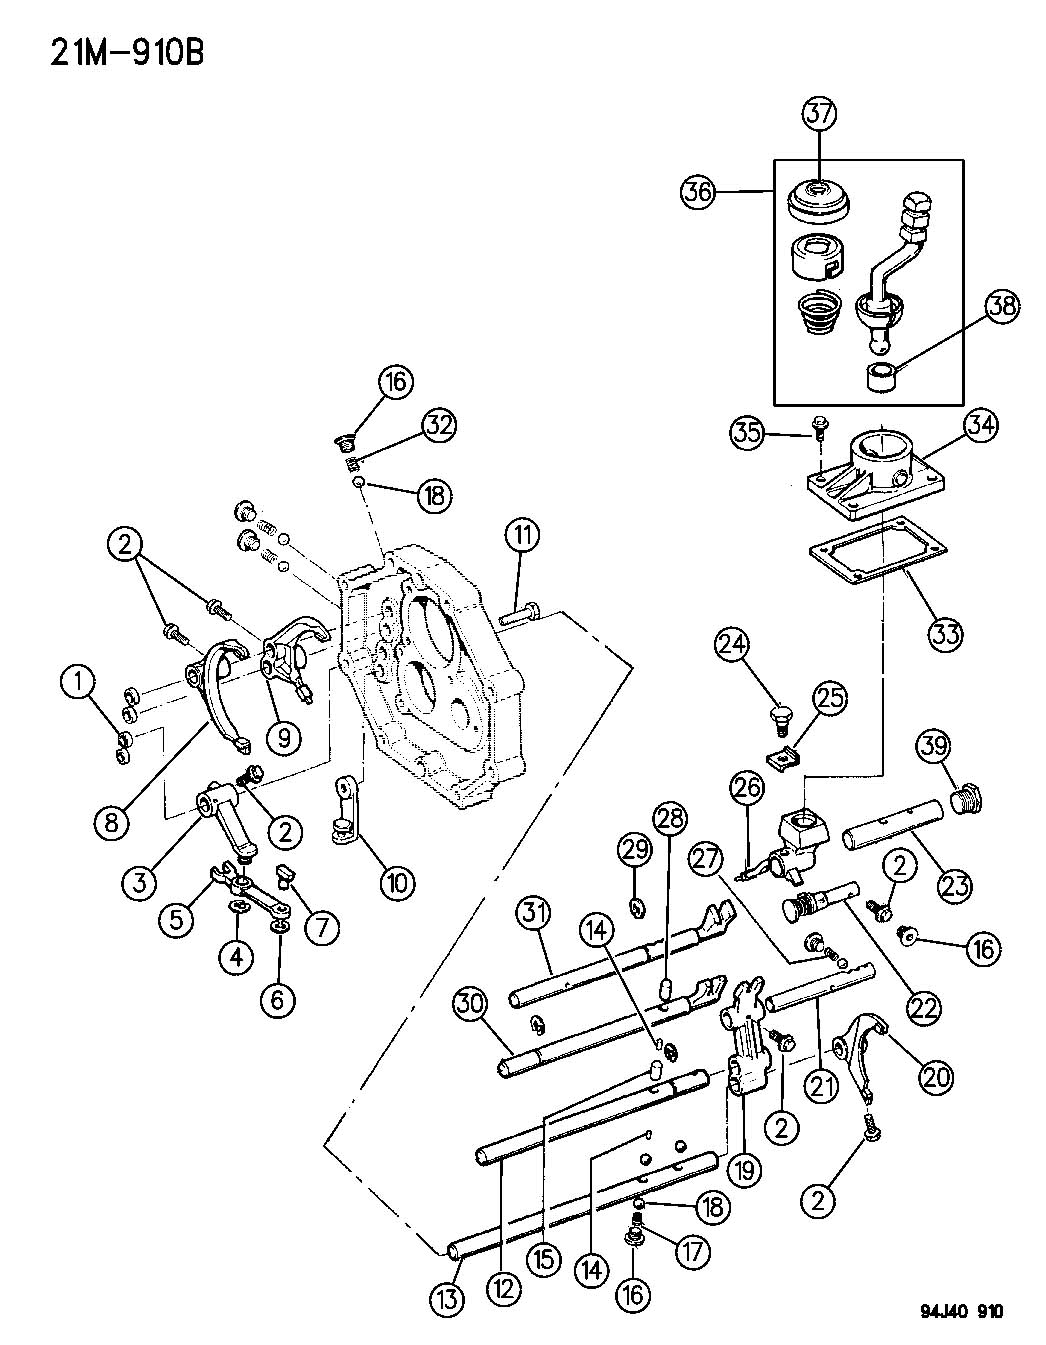 Chevy Nv3500 Transmission Schematics. Chevy. Auto Wiring